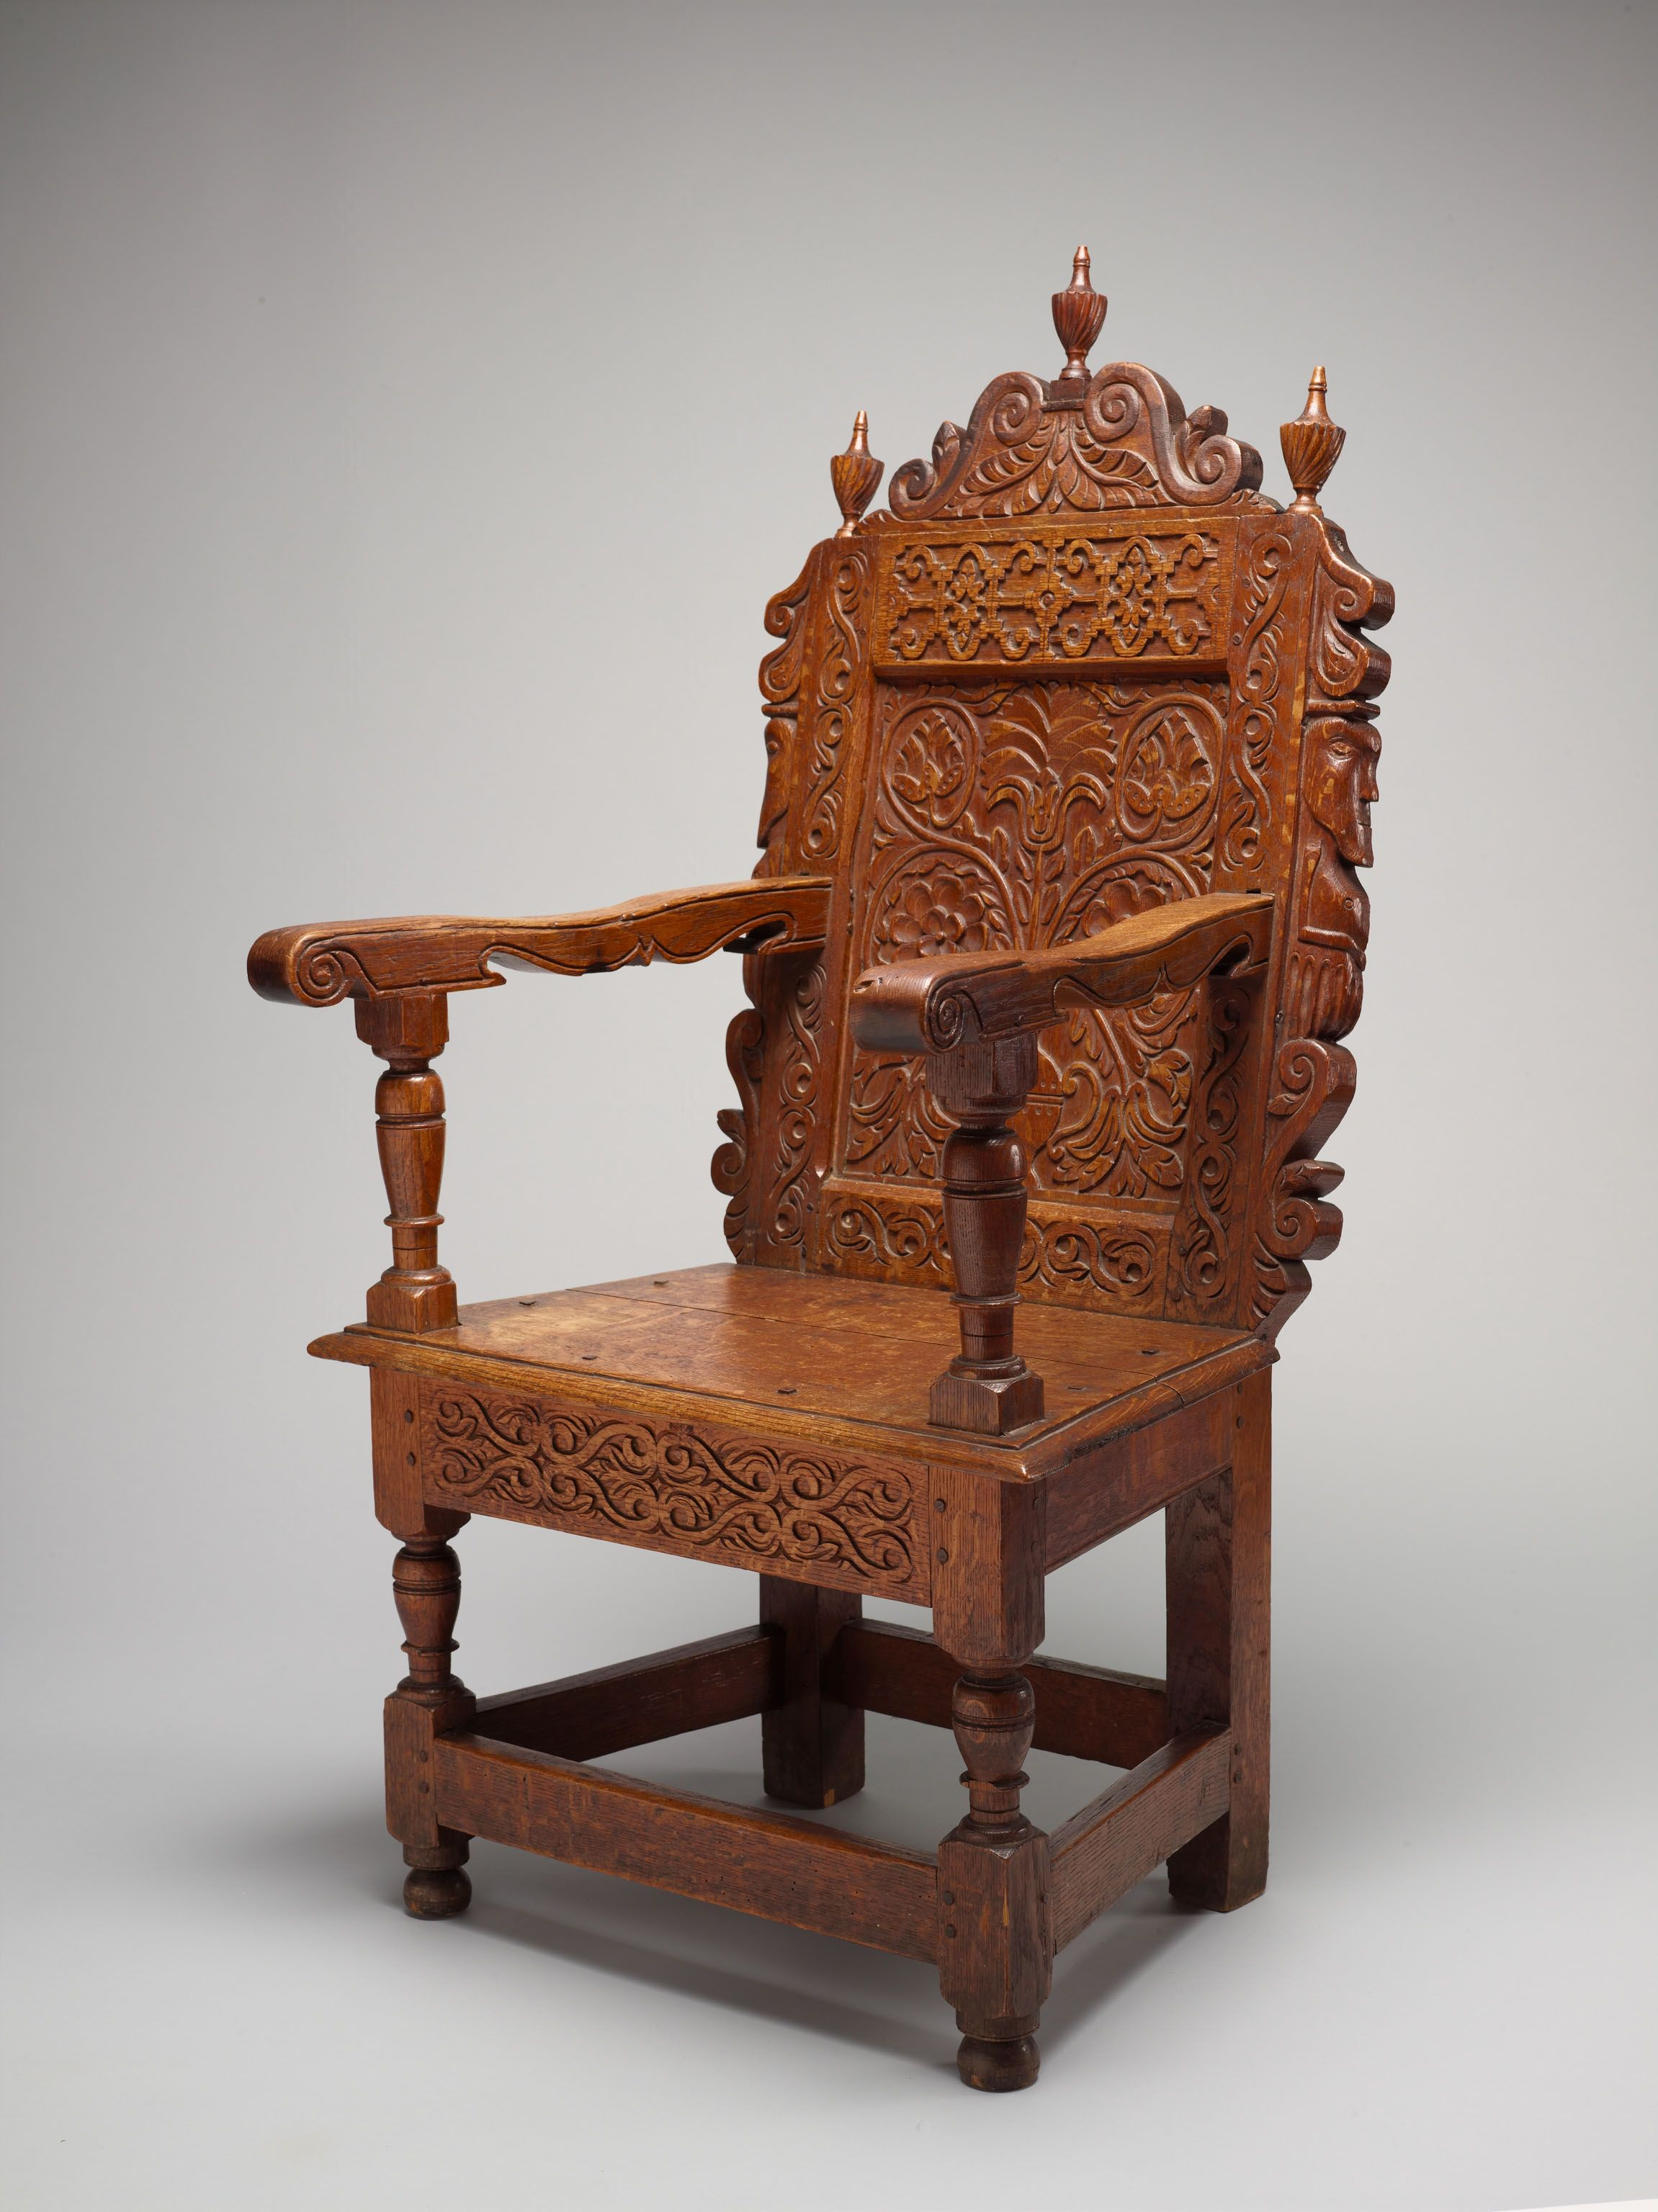 Admirable Thomas Dennis Joined Chair 1660S Ipswich Antique Chairs Evergreenethics Interior Chair Design Evergreenethicsorg